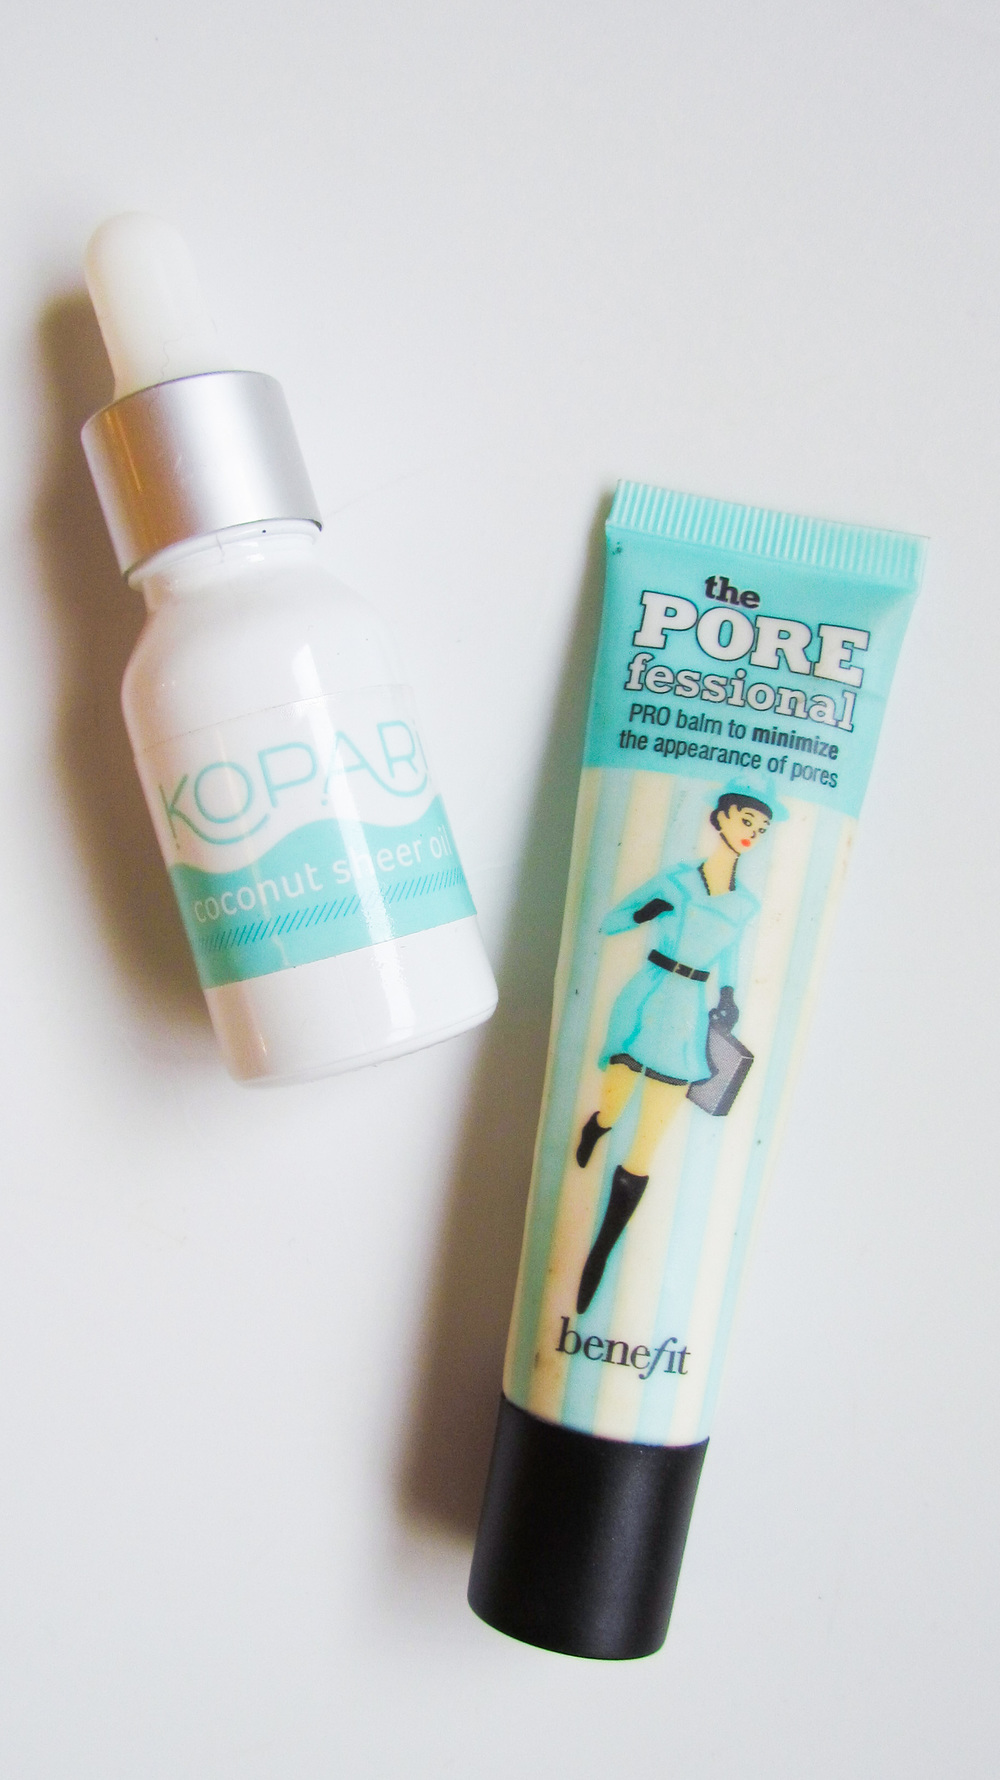 Benefit Porefessional and Kopari Sheer Coconut Oil